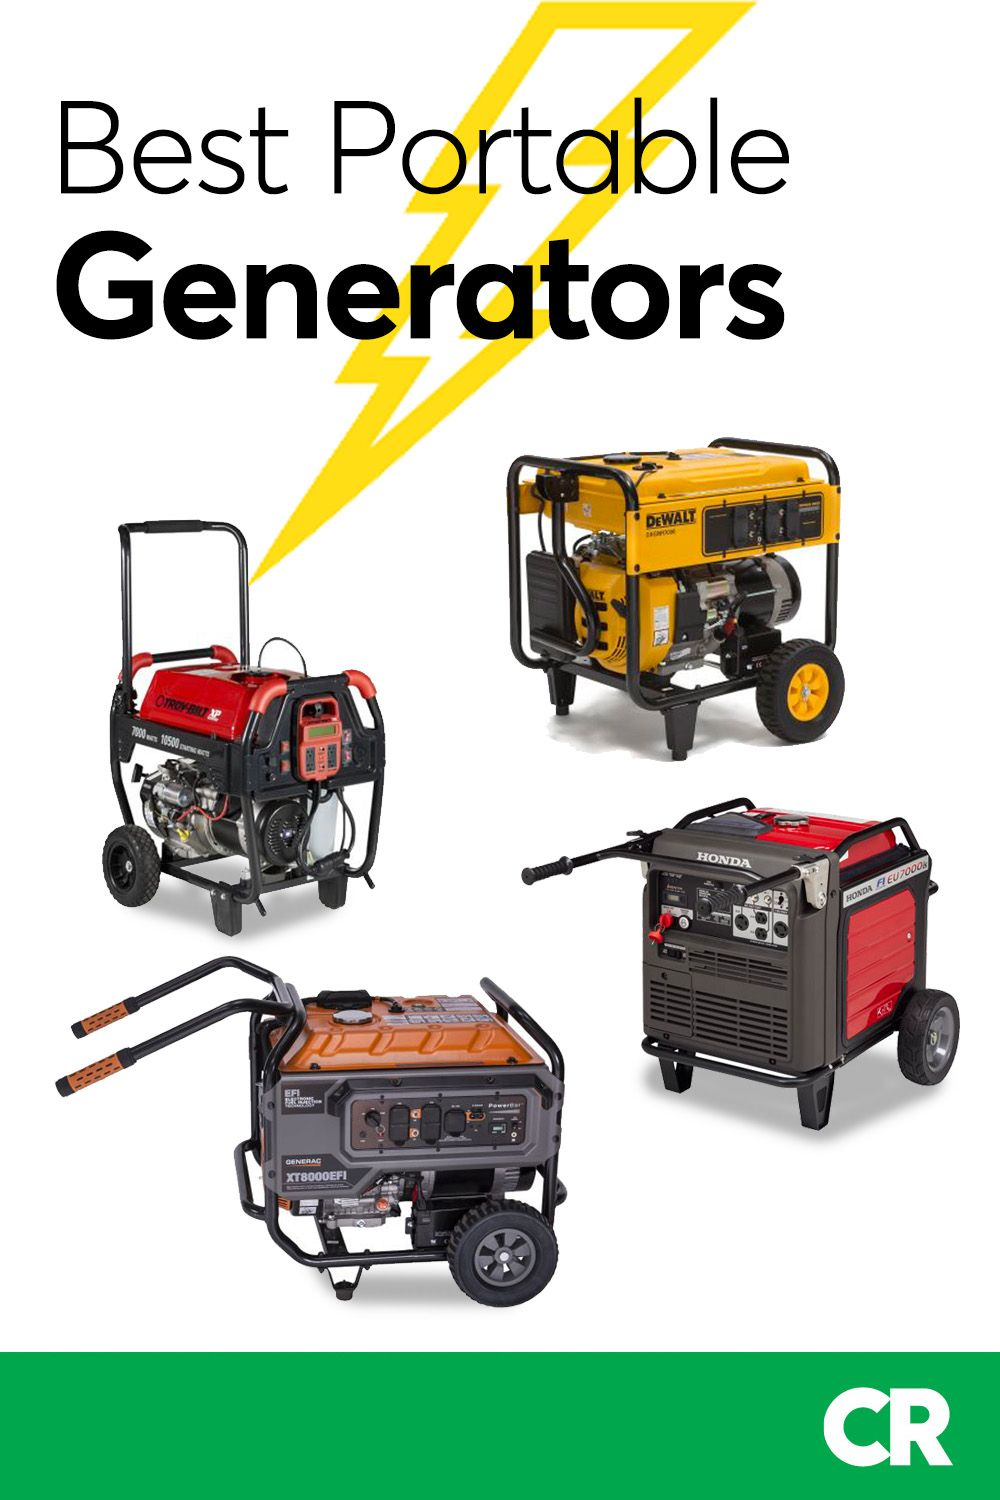 Best Portable Generators From Consumer Reports Tests Best Portable Generator Portable Generators Generation